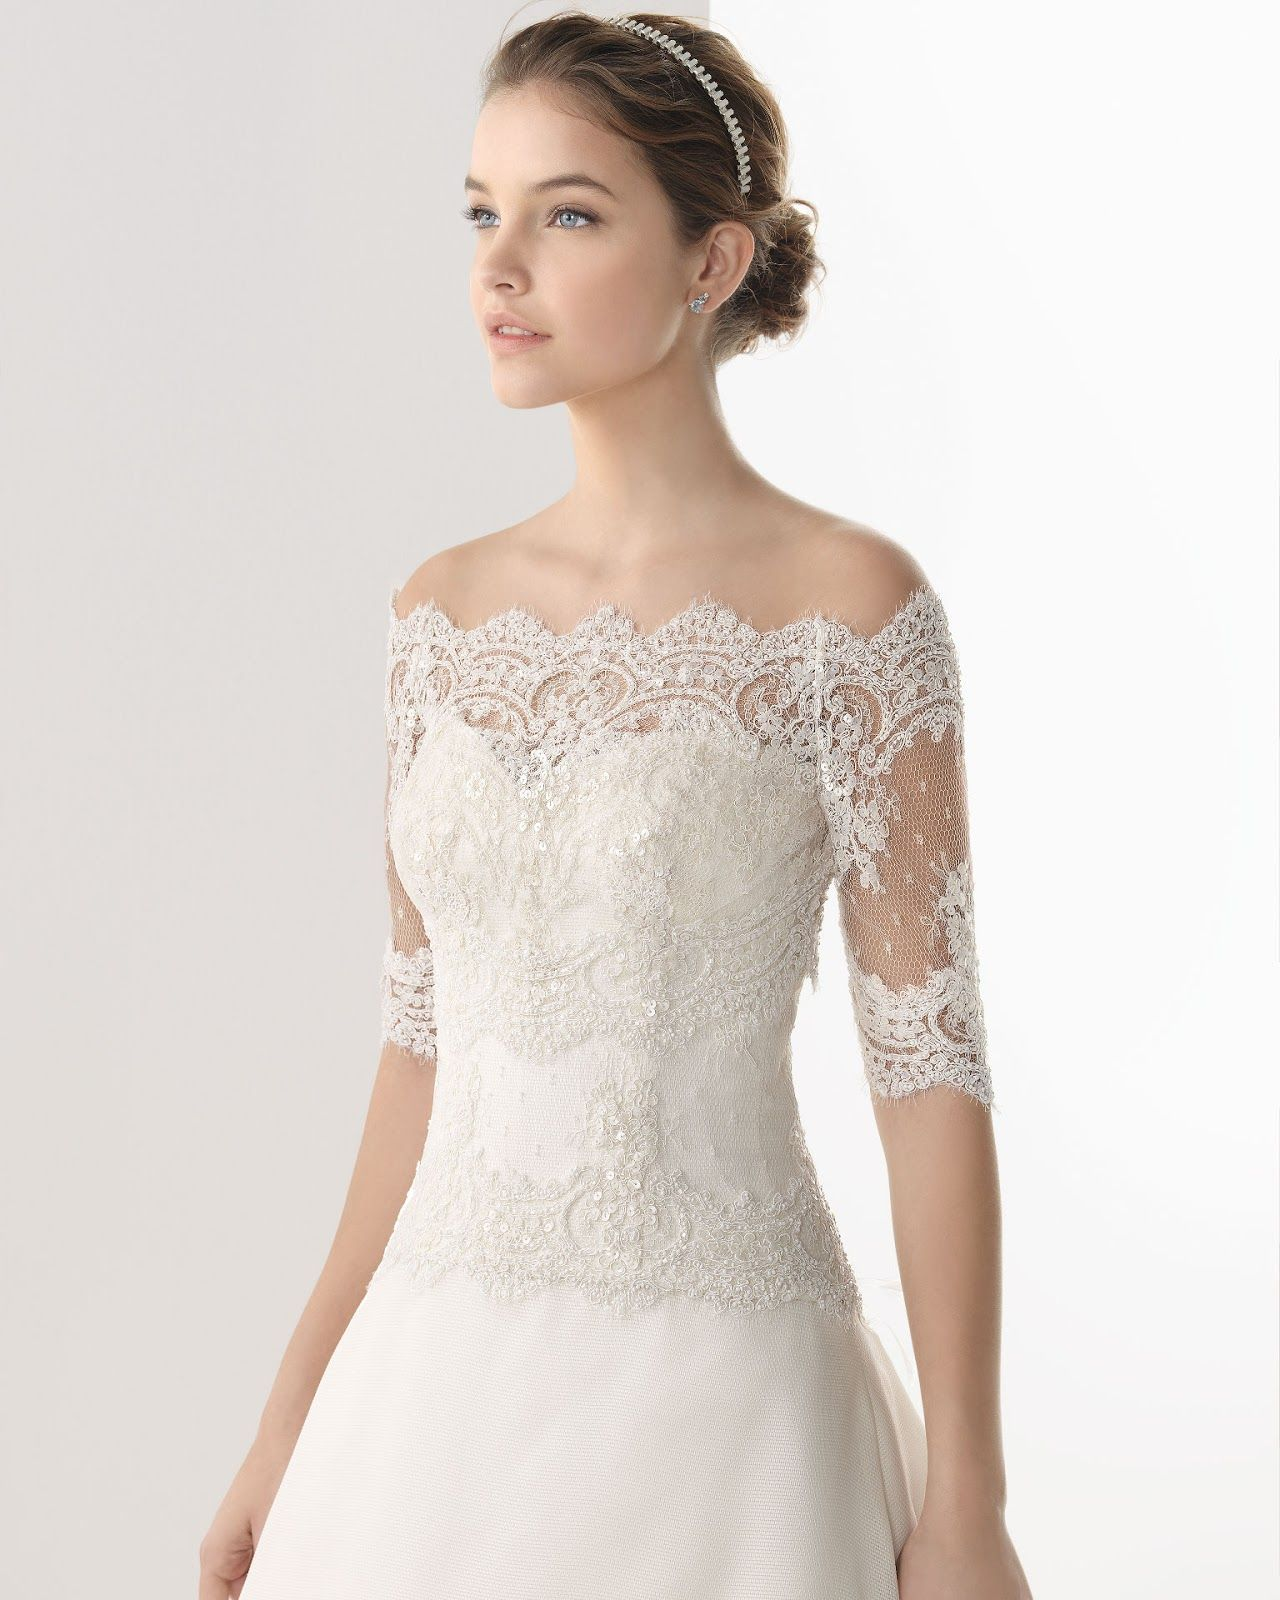 pictures of long train wedding dress with lace shoulders ...